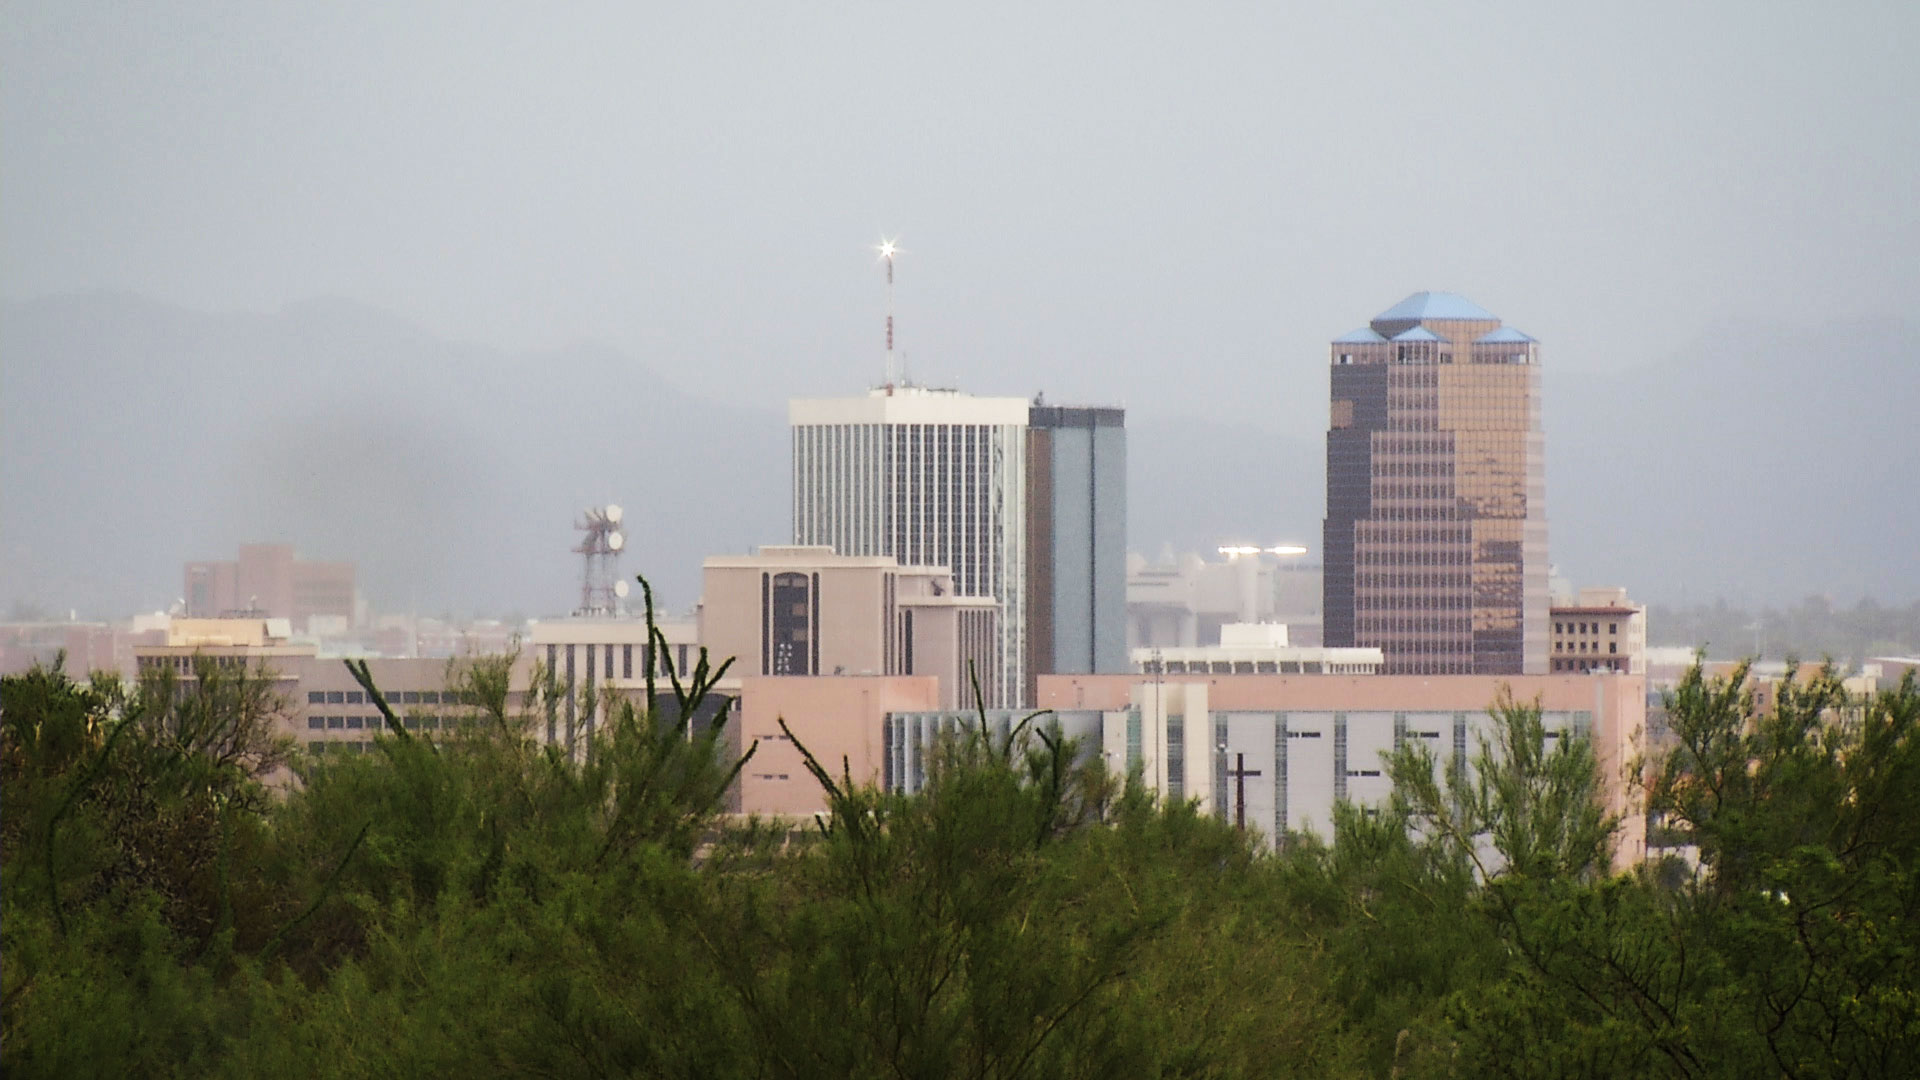 File image shows the downtown Tucson skyline on a rainy day.